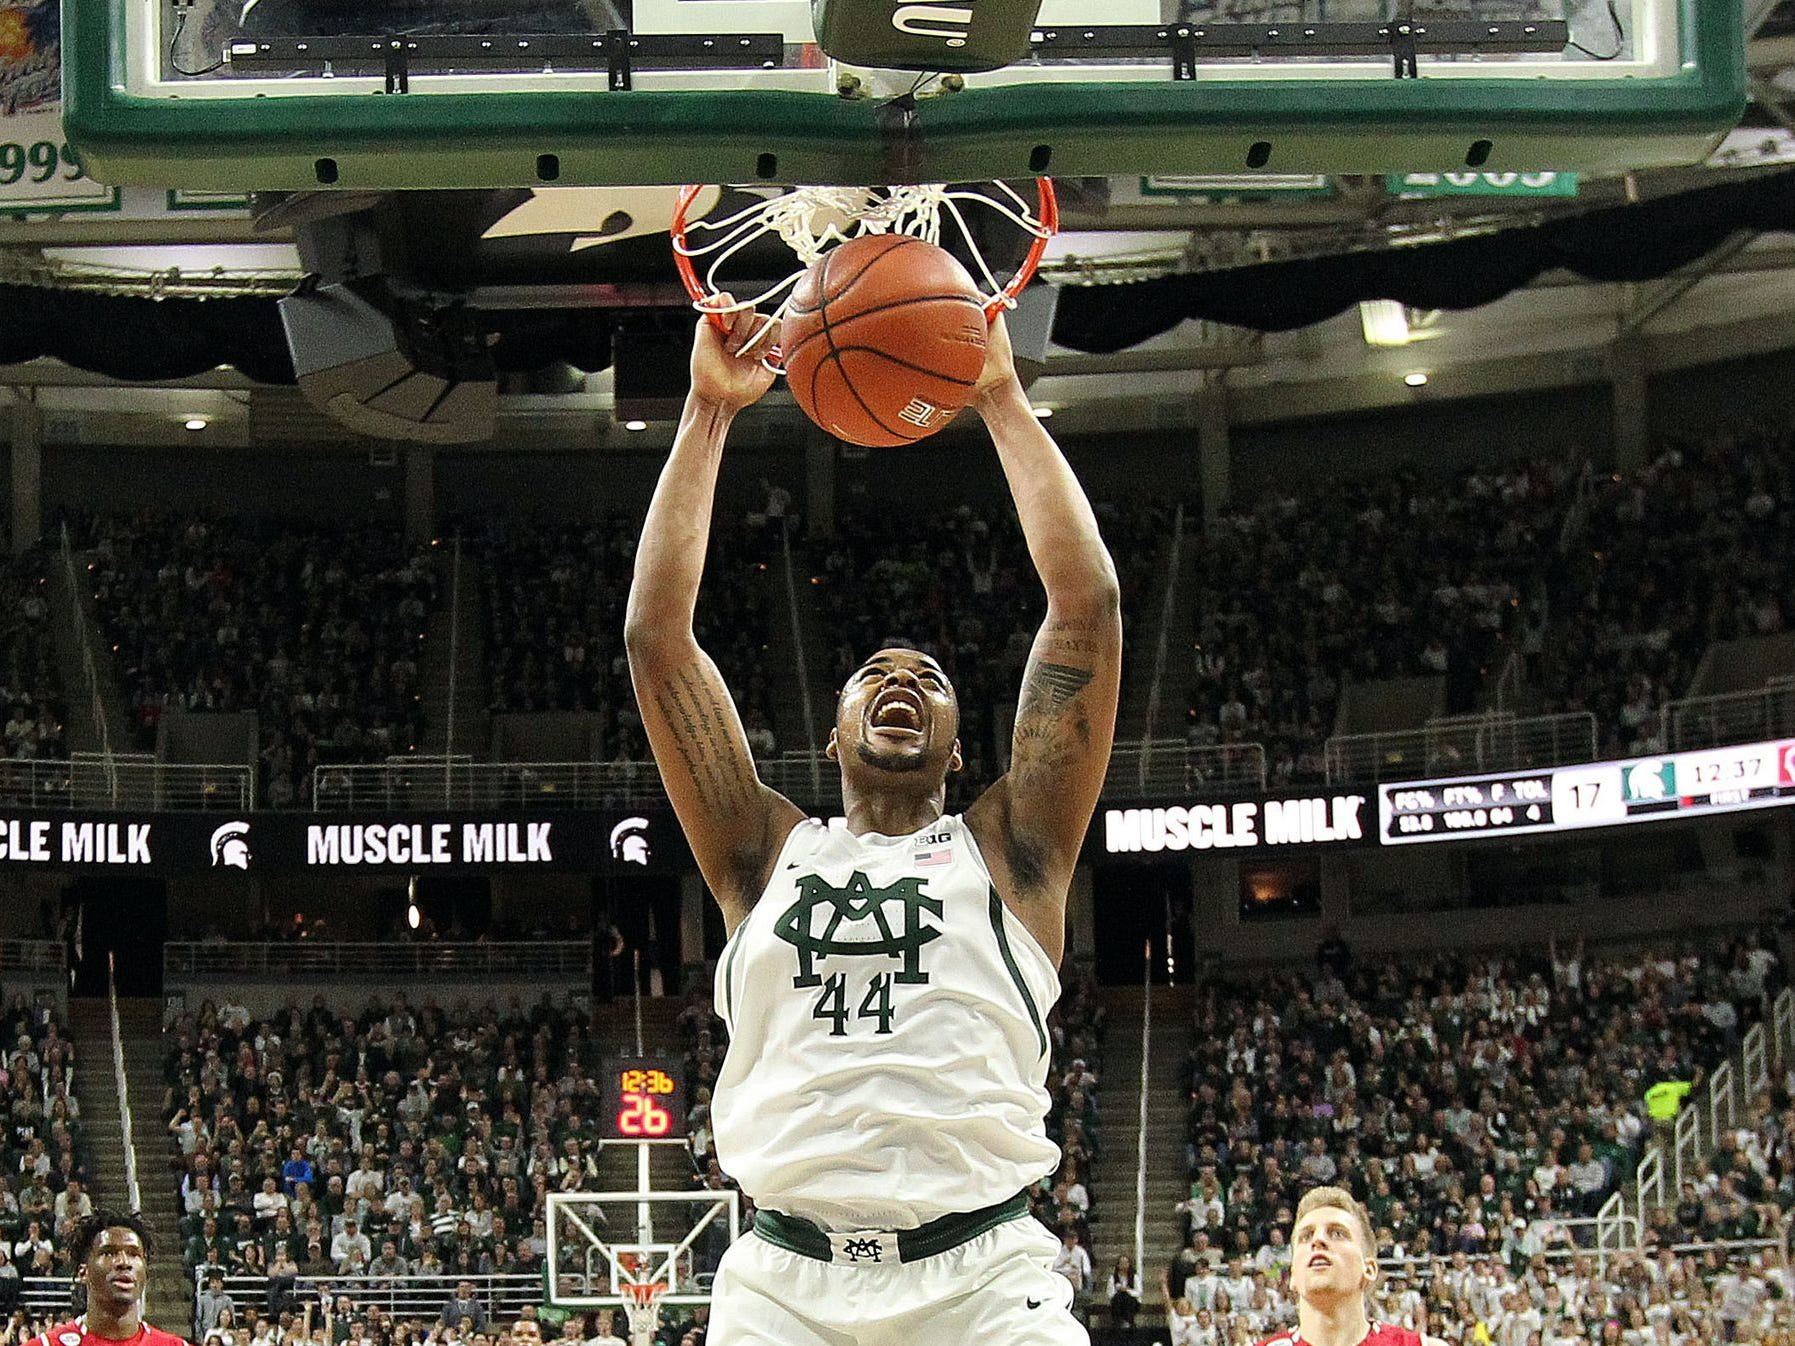 Mike Carter/USA TODAY Sports Michigan State forward Nick Ward averaged 13.6 points per game, second only to teammate Miles Bridges among Big Ten freshmen, and his 6.3 rebounds were third among freshmen. Michigan State forward Nick Ward dunks against Wisconsin during the first half of MSU's win Sunday at Breslin Center.